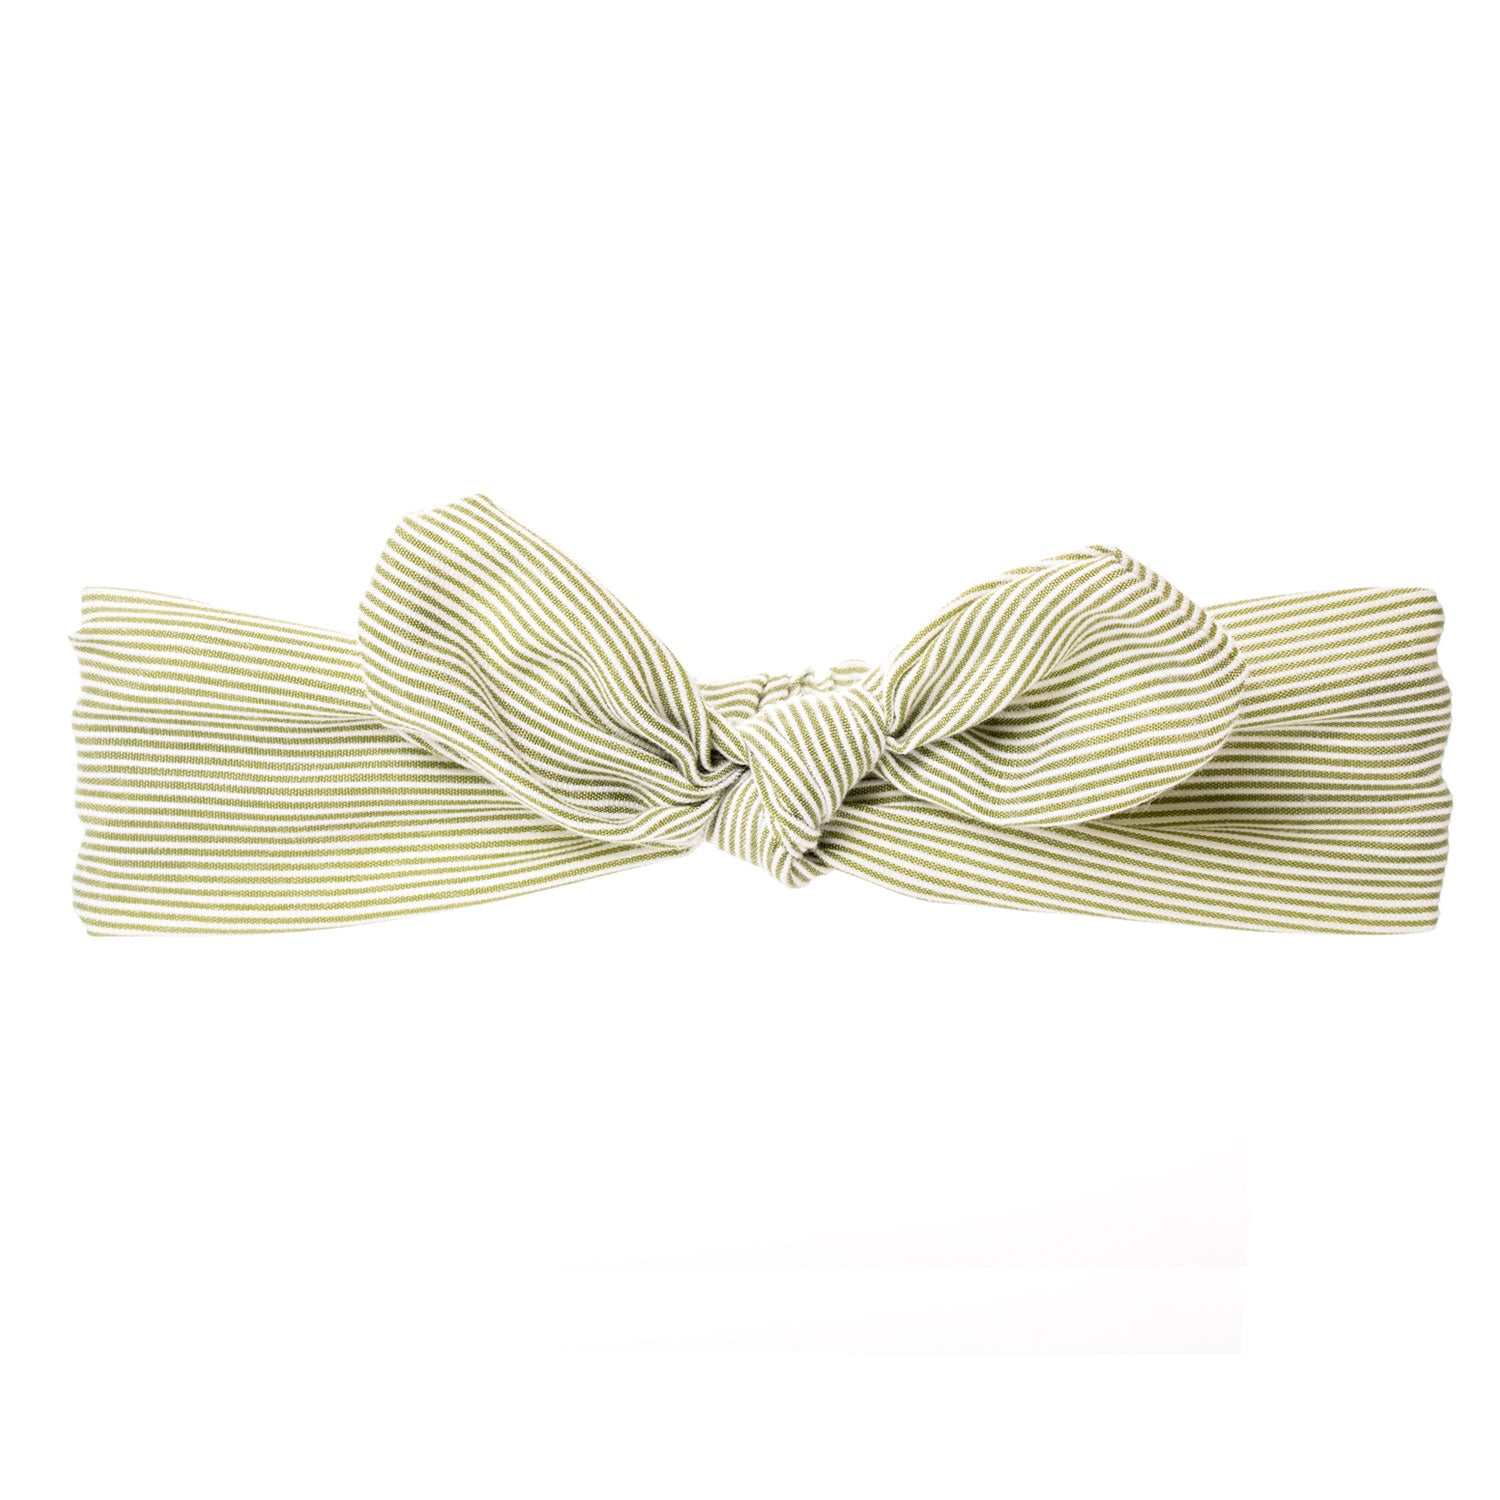 Bonnie Ears headband Olive Green & White Stripes